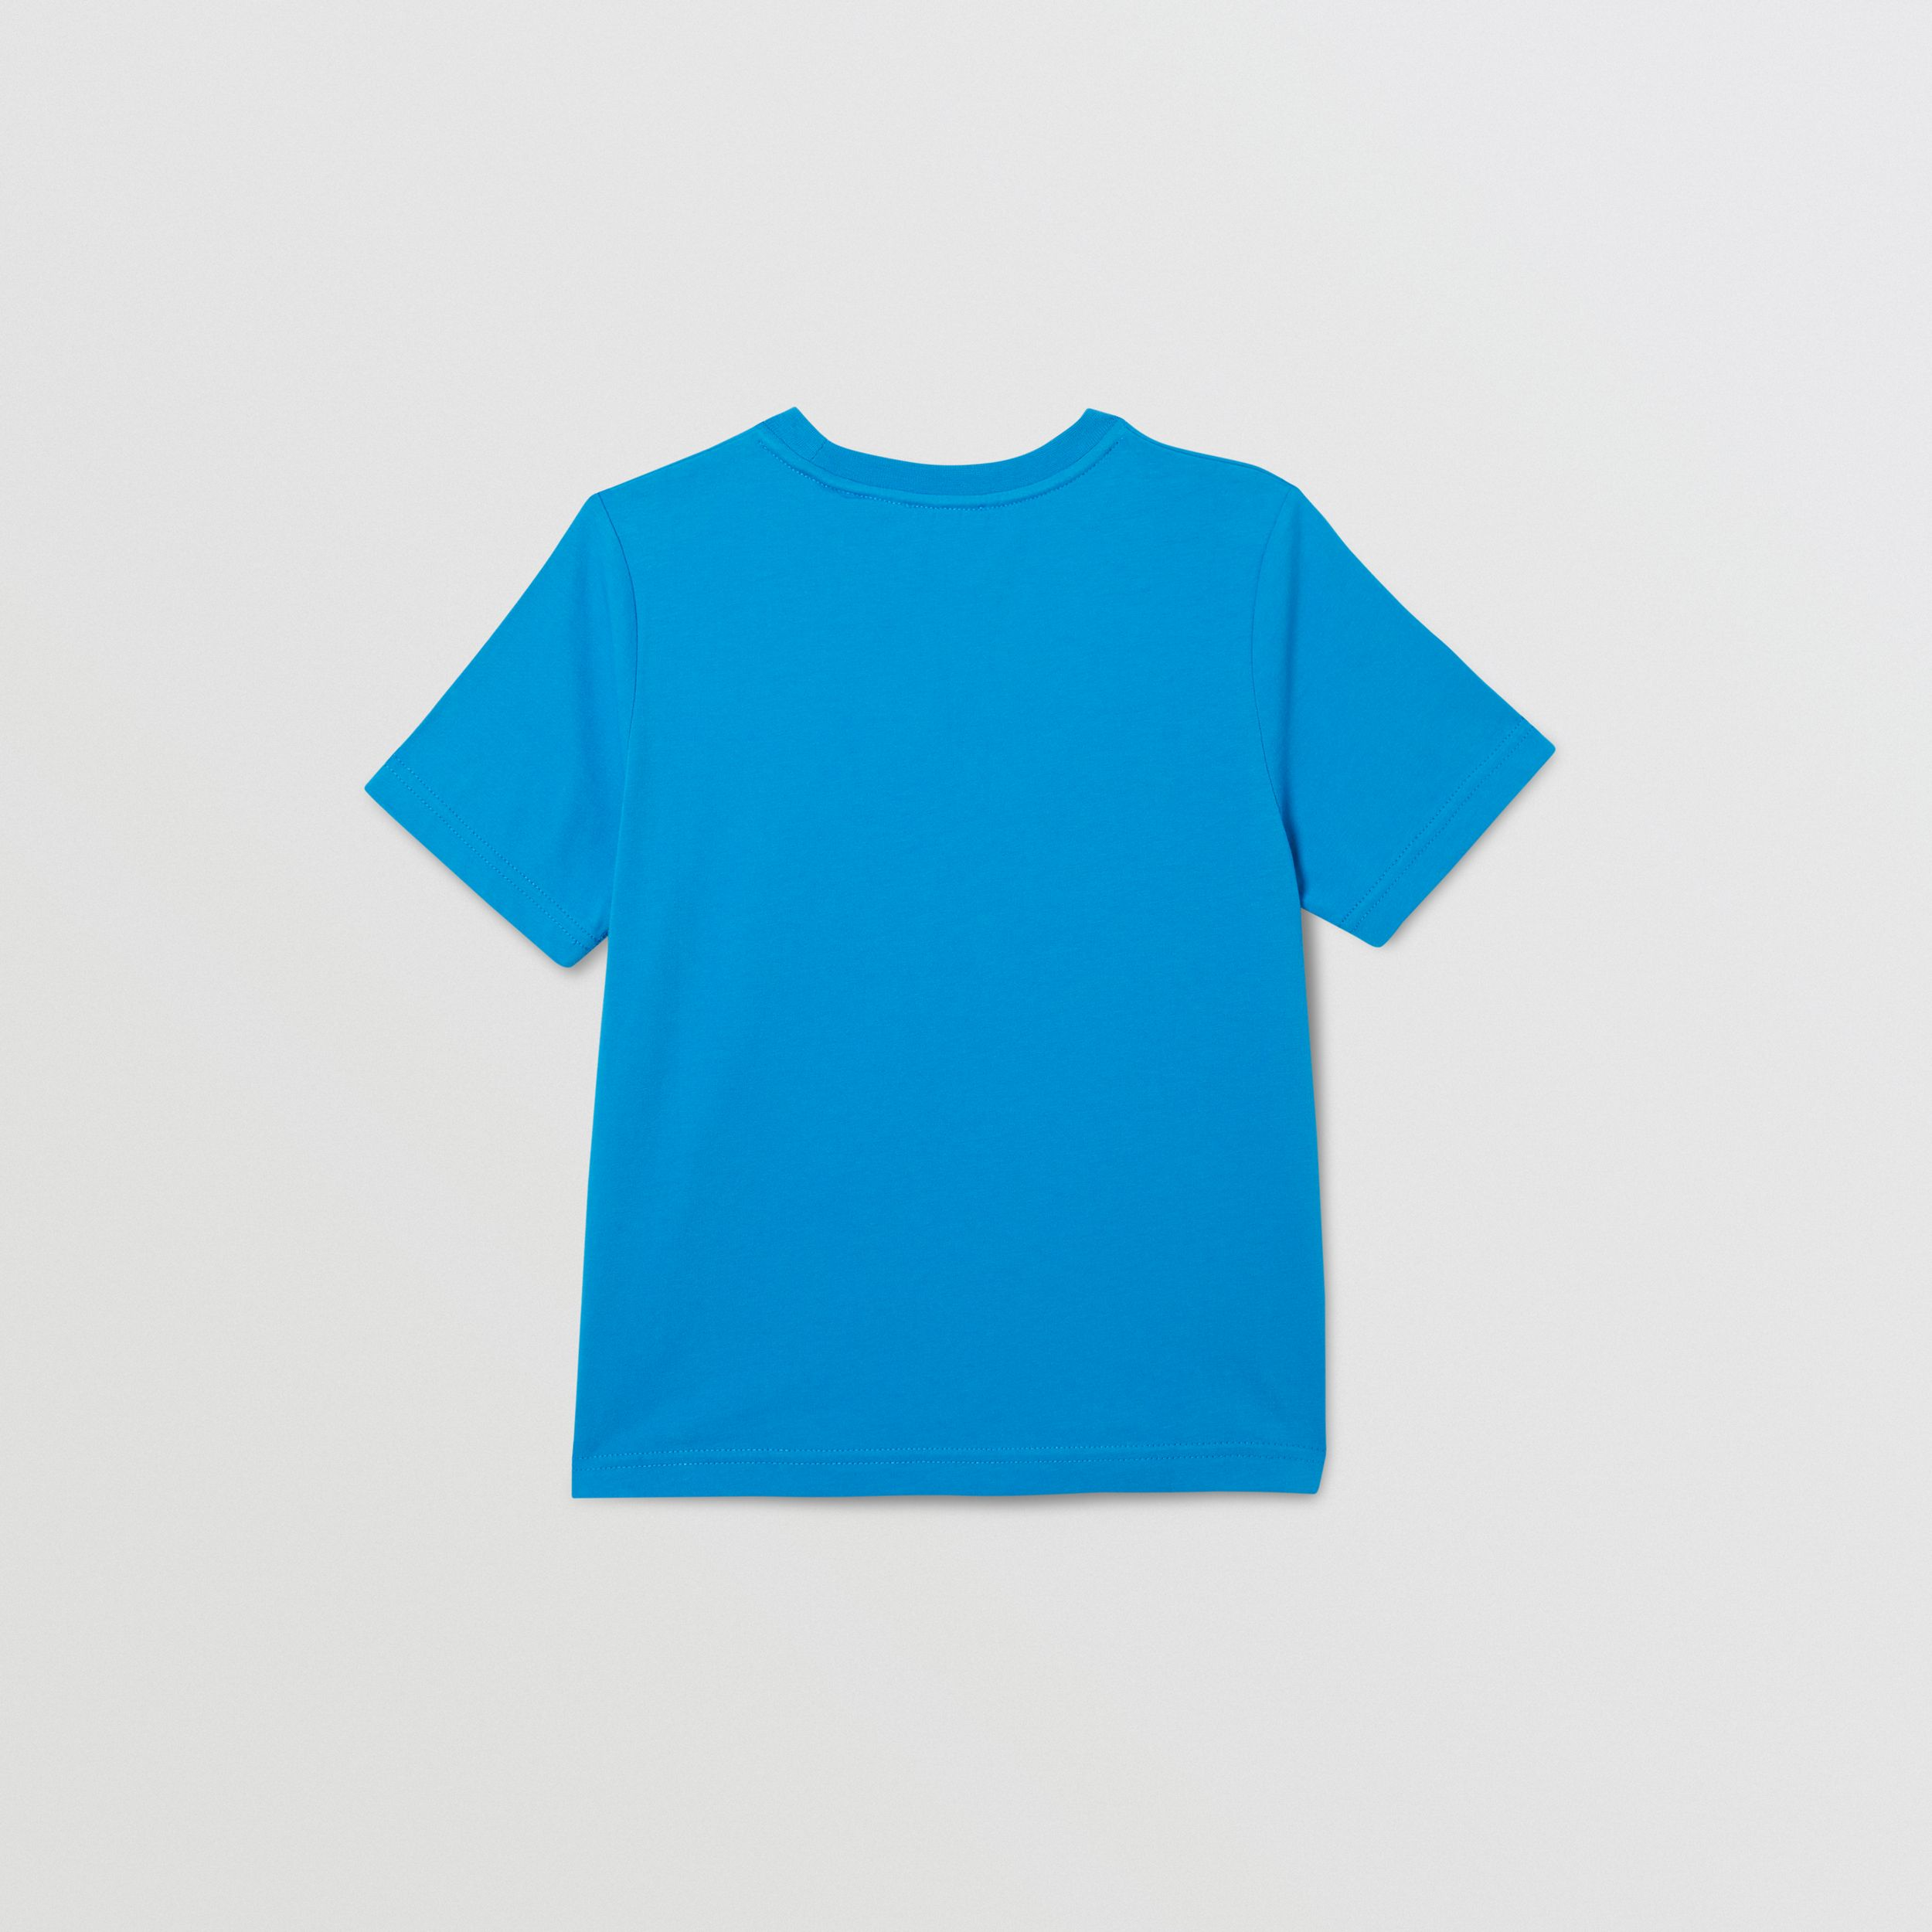 Logo Graphic Print Cotton T-shirt in Cerulean Blue | Burberry Australia - 4